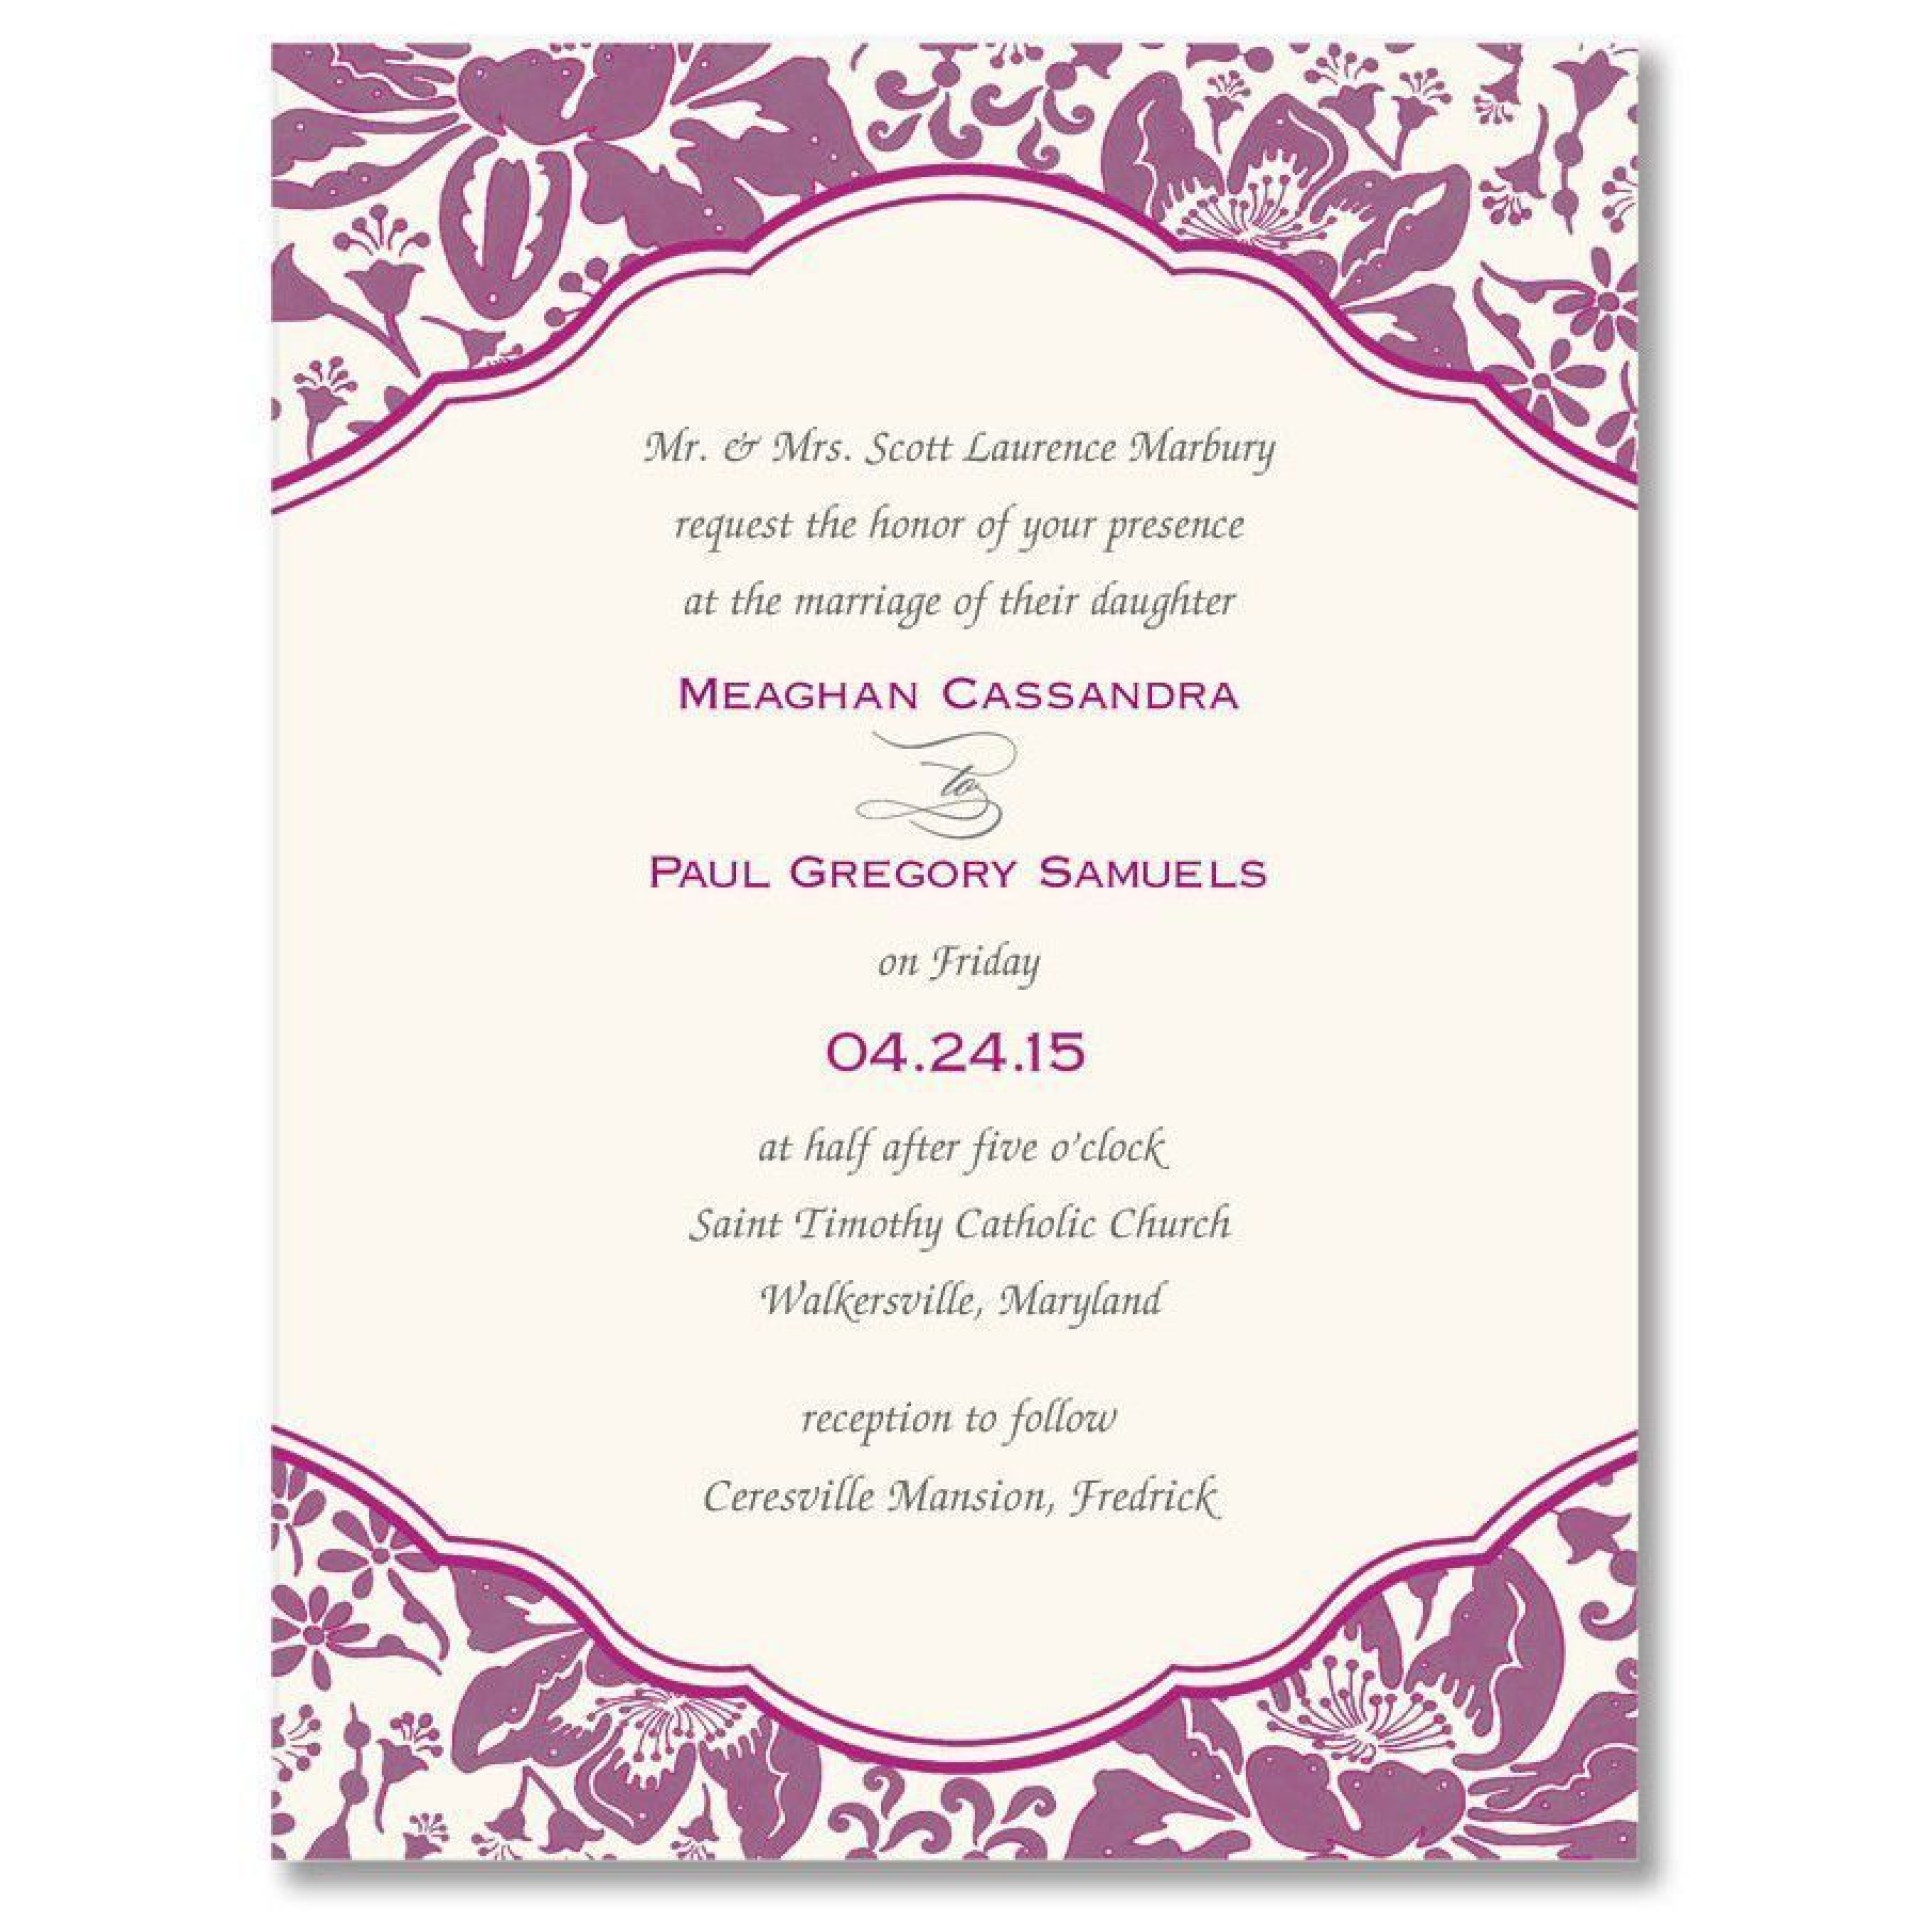 002 Phenomenal Invitation Template For Word Concept  Birthday Wedding Free Indian1920